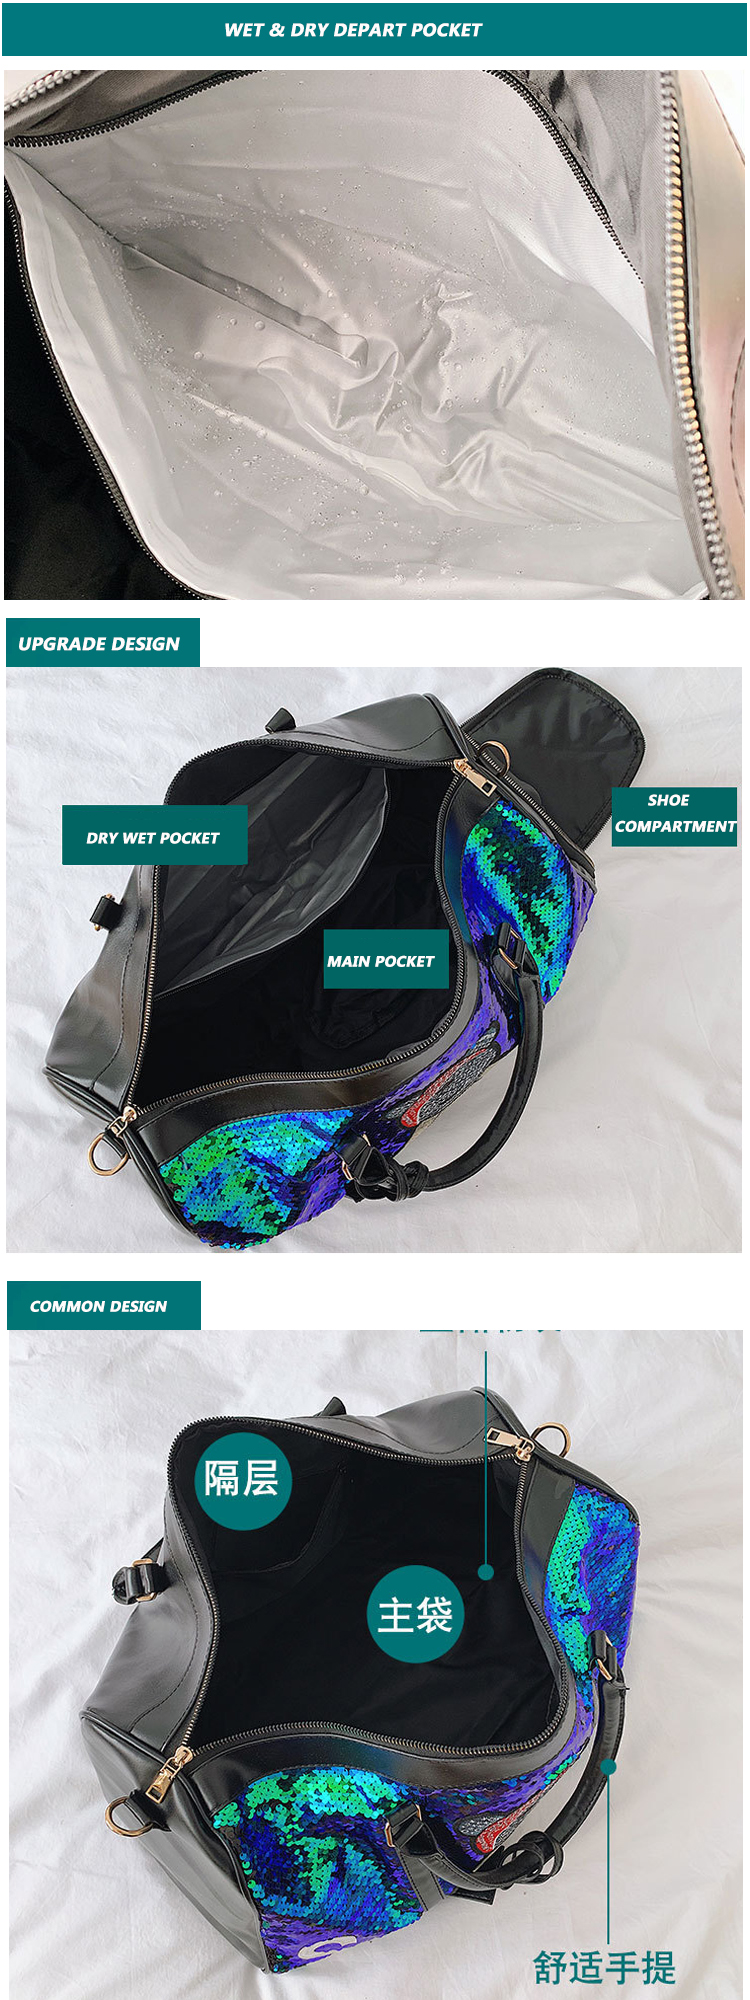 Osgoodway2 Fashion Shiny Sequin Large Weekend Travel Duffel Tote Bag Girls Sports Gym Duffel Bag with Shoe Compartment